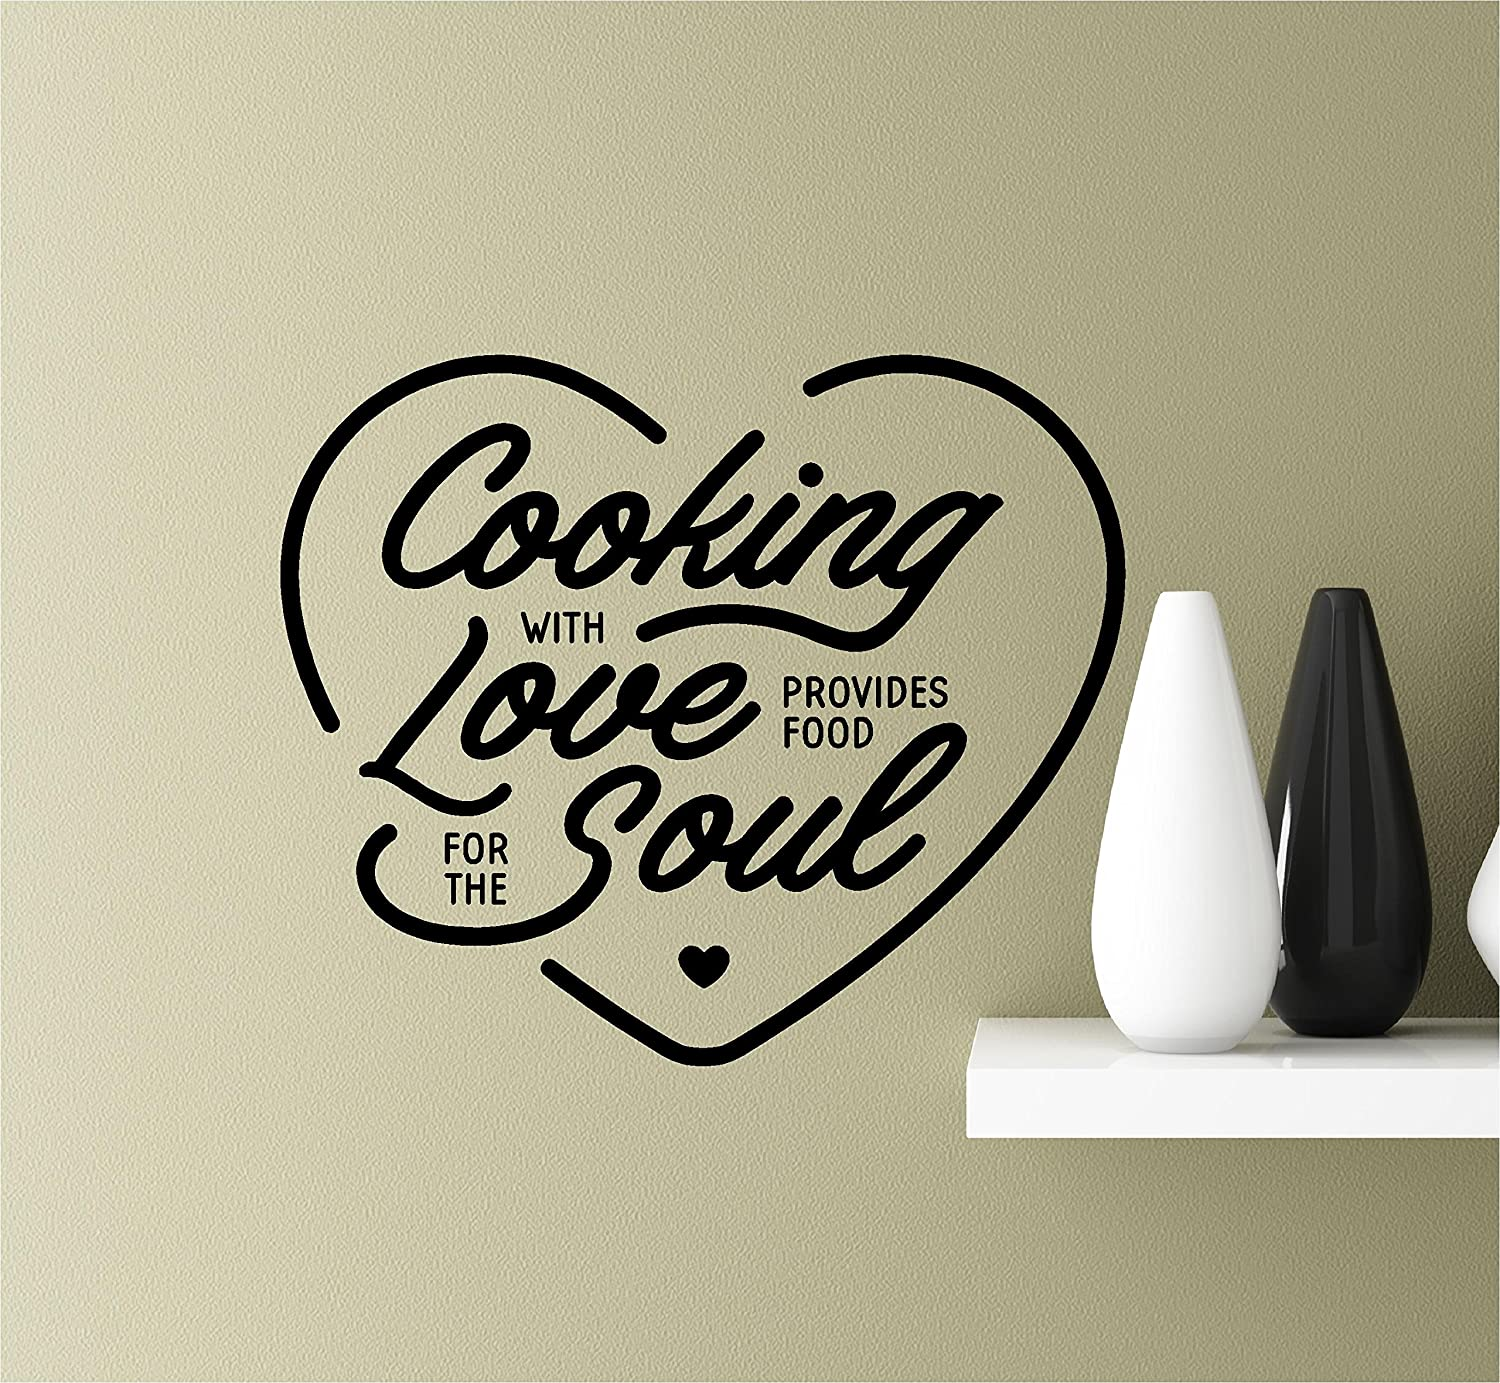 Southern Sticker Company Cooking with Love Provides Food for The Soul Heart Vinyl Wall Art Inspirational Quotes Decal Sticke